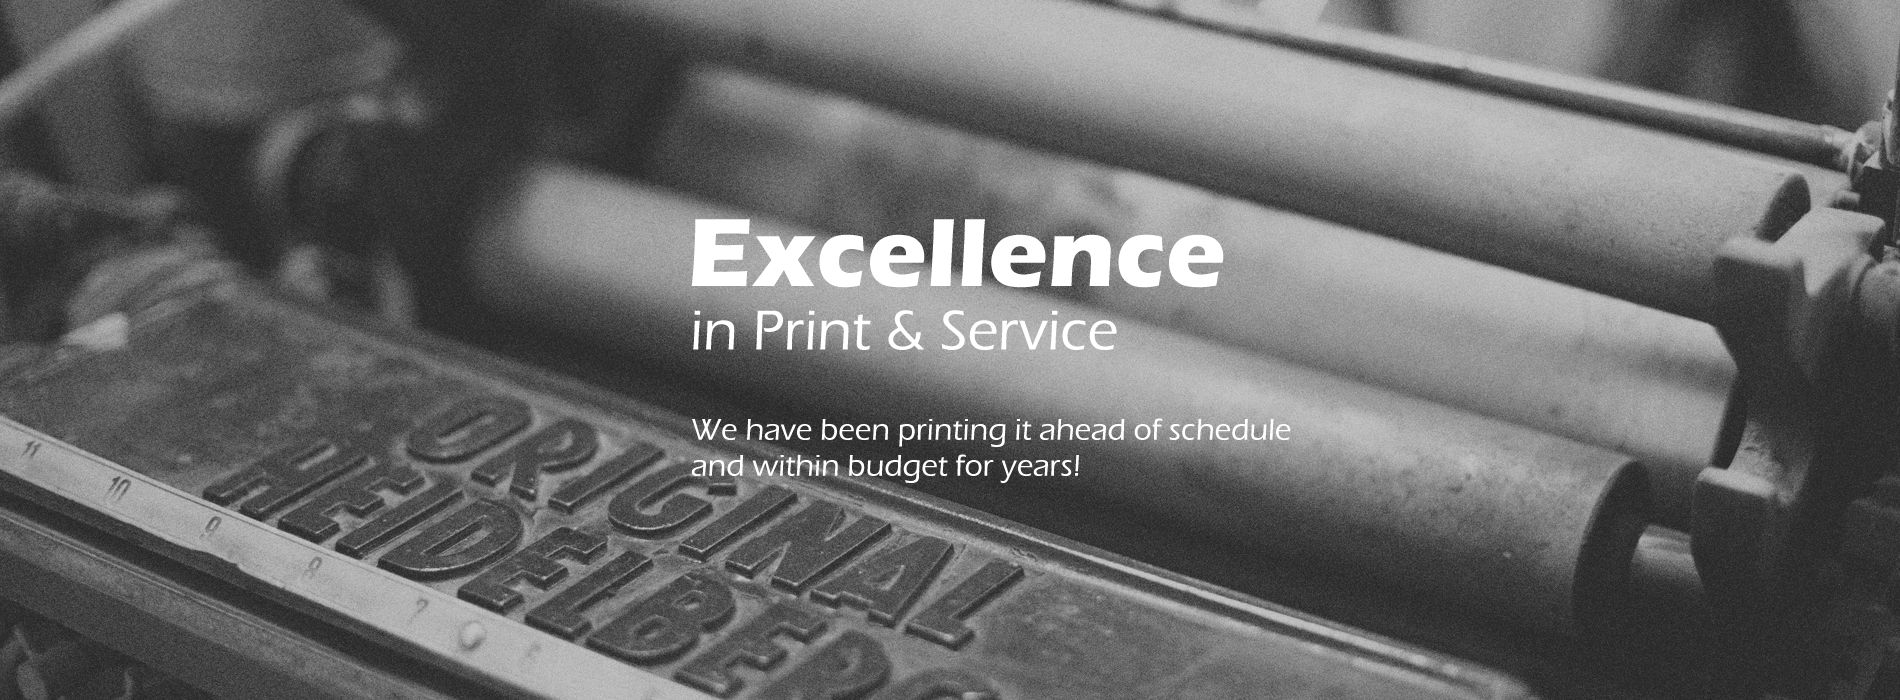 Swan Hill Victoria Printer - Academy Graphics